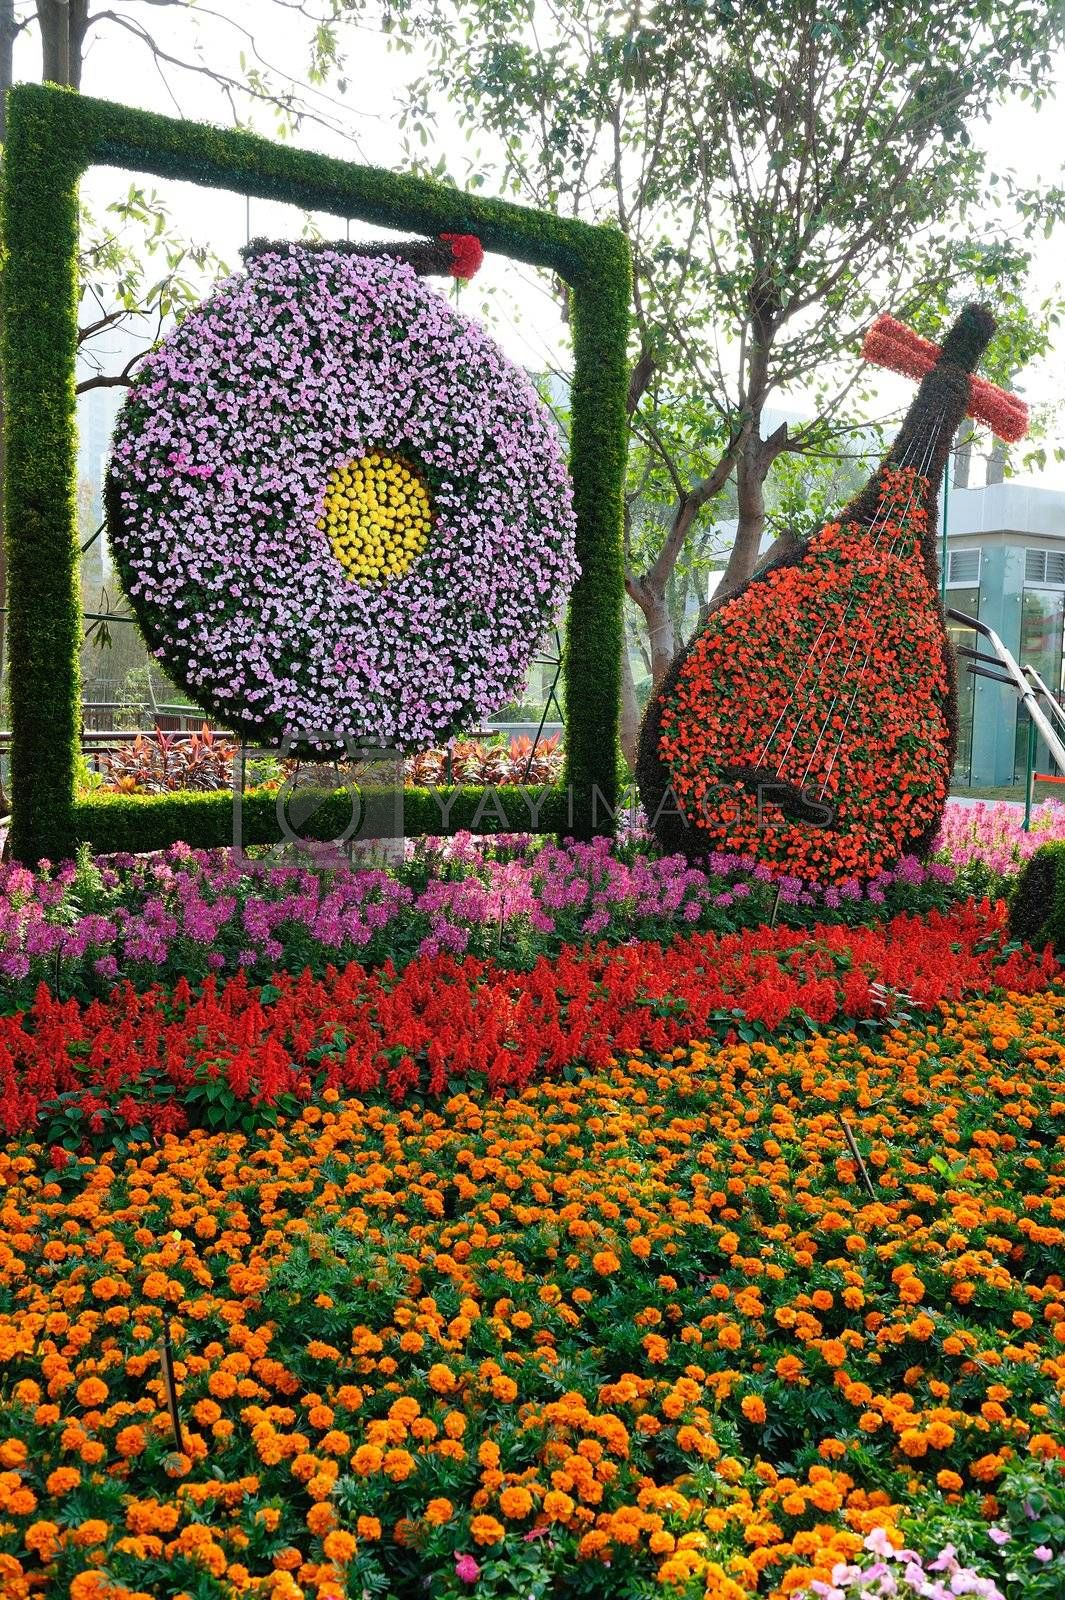 Chinese traditional musical instruments made of flowers in Flower Citizen Plaza, Guangzhou city, China